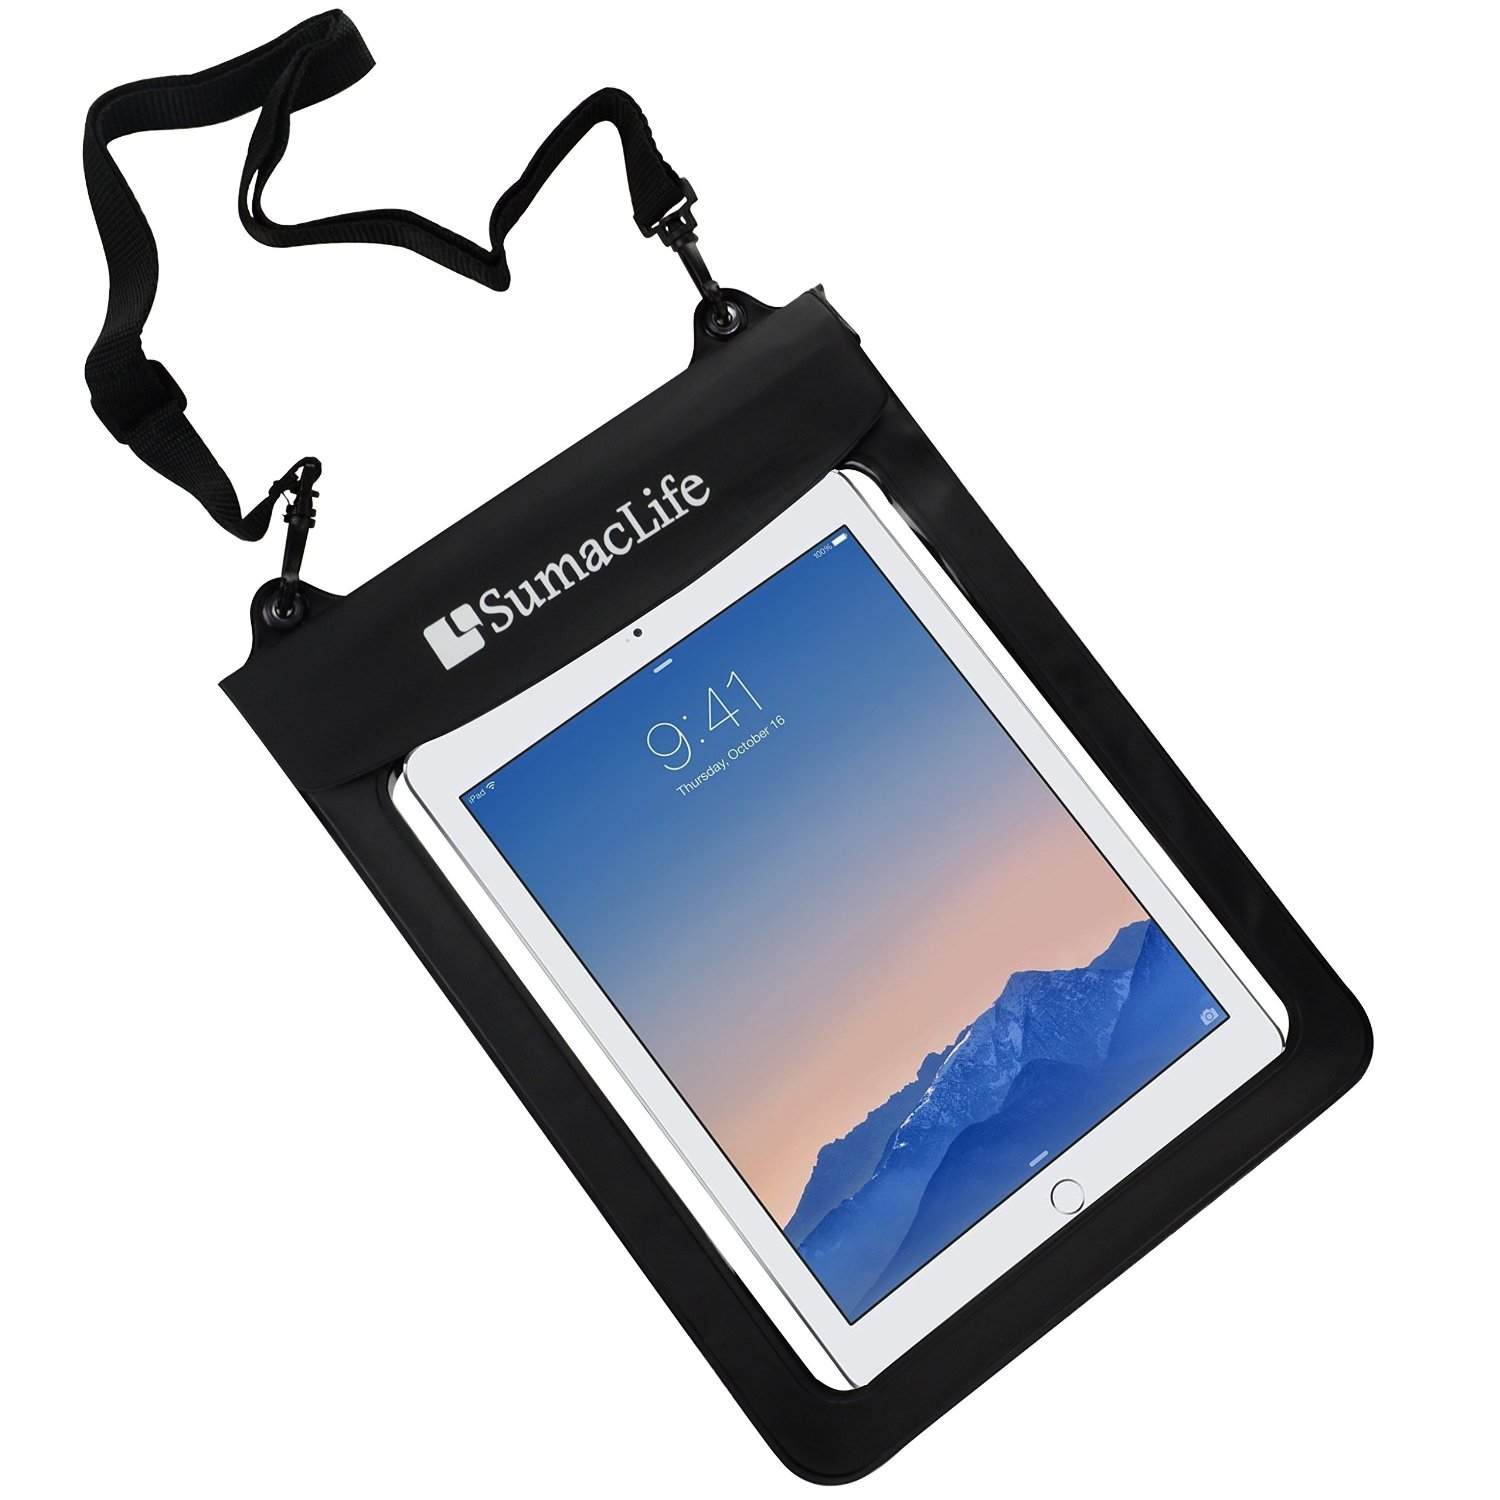 SumacLife Waterproof Pouch iPad Air 2